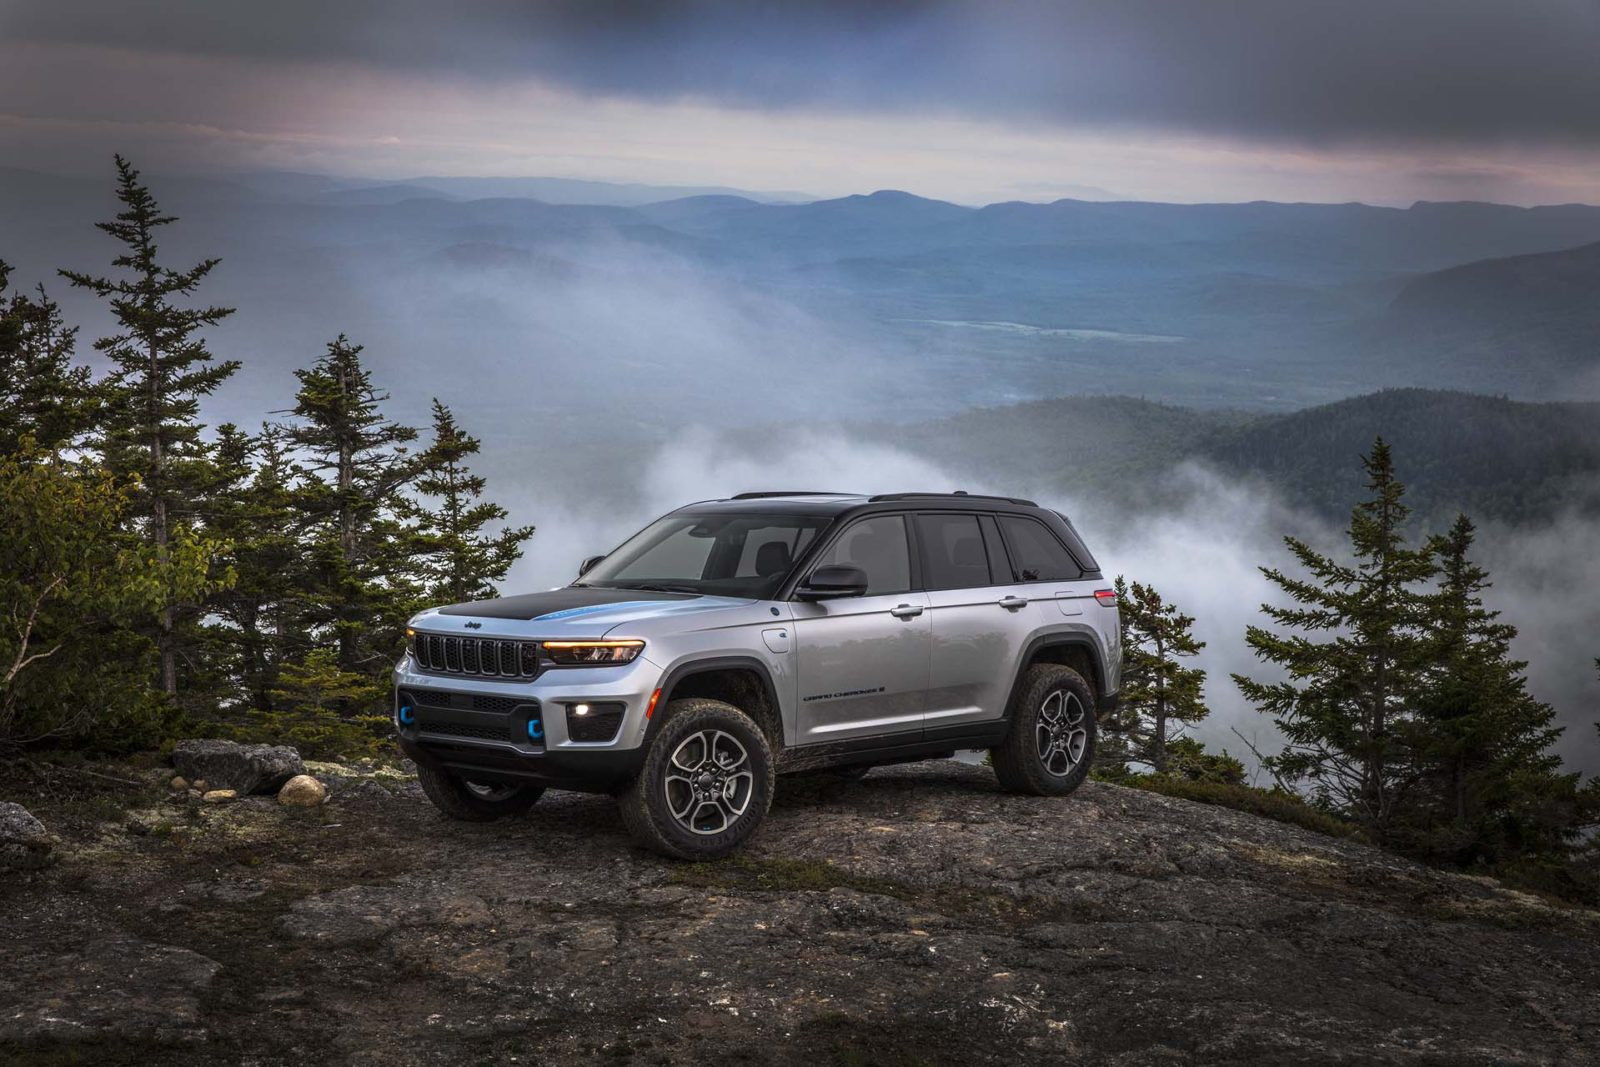 preview:-2022-jeep-grand-cherokee-2-row-debuts-with-4xe-plug-in-hybrid,-v-8-options